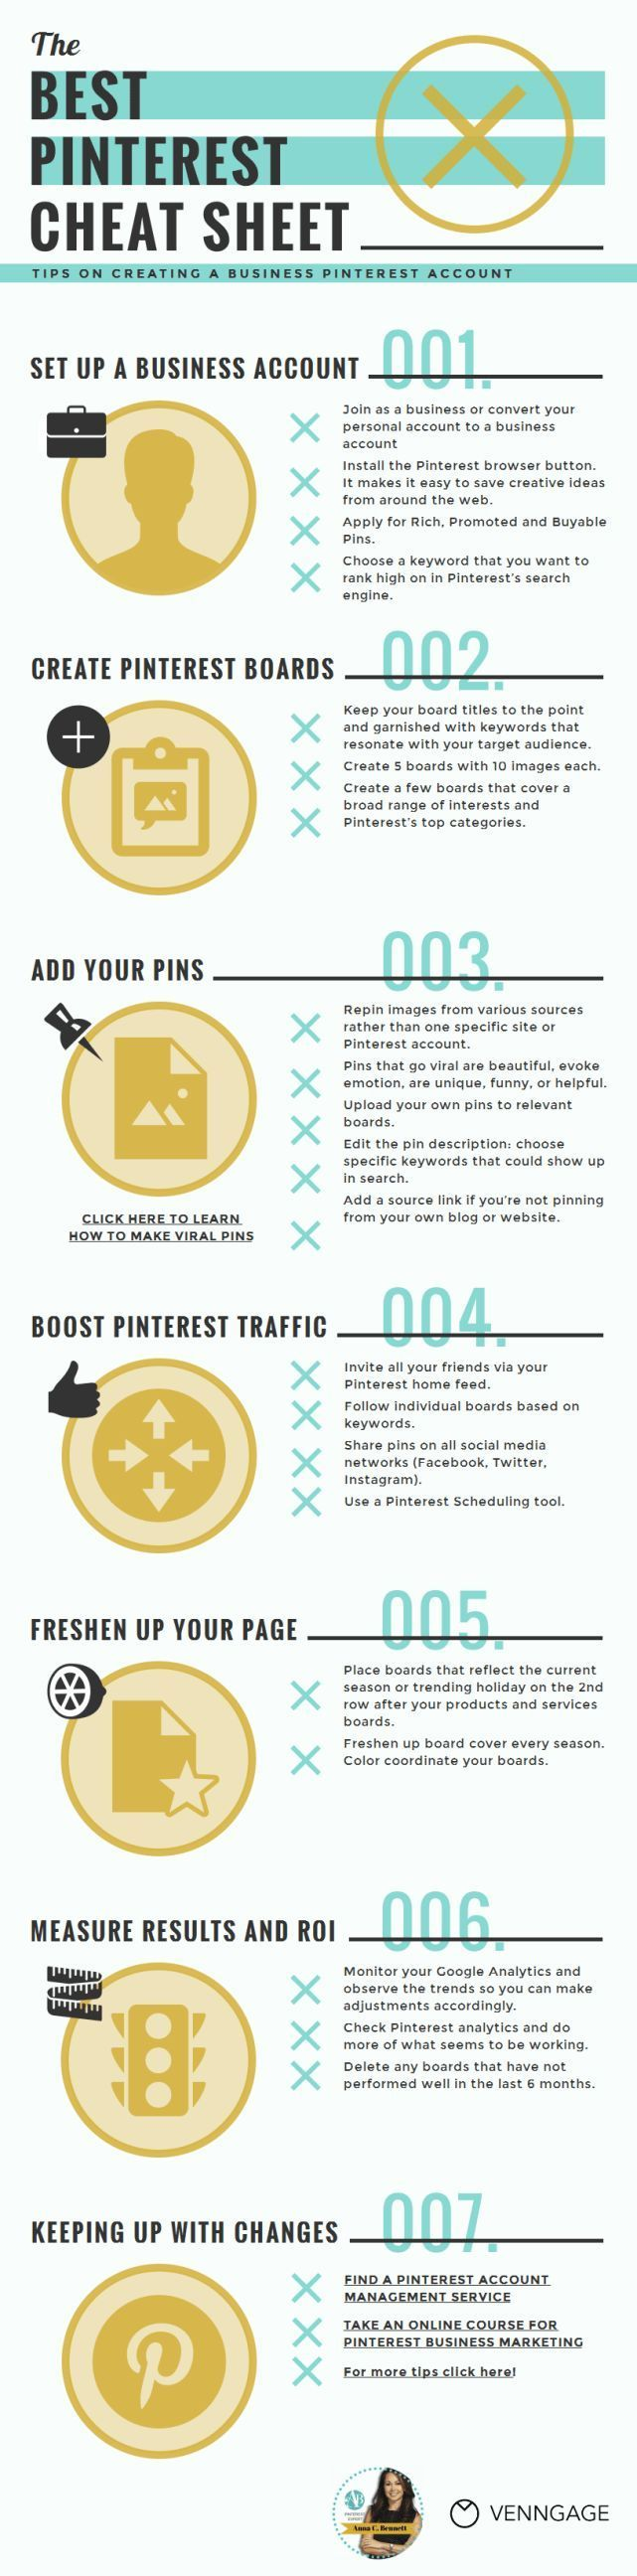 Pinterest for Business | Our brains love visuals and processes images 60,000 times faster than text which is no wonder why infographics receives very high engagement on Pinterest.